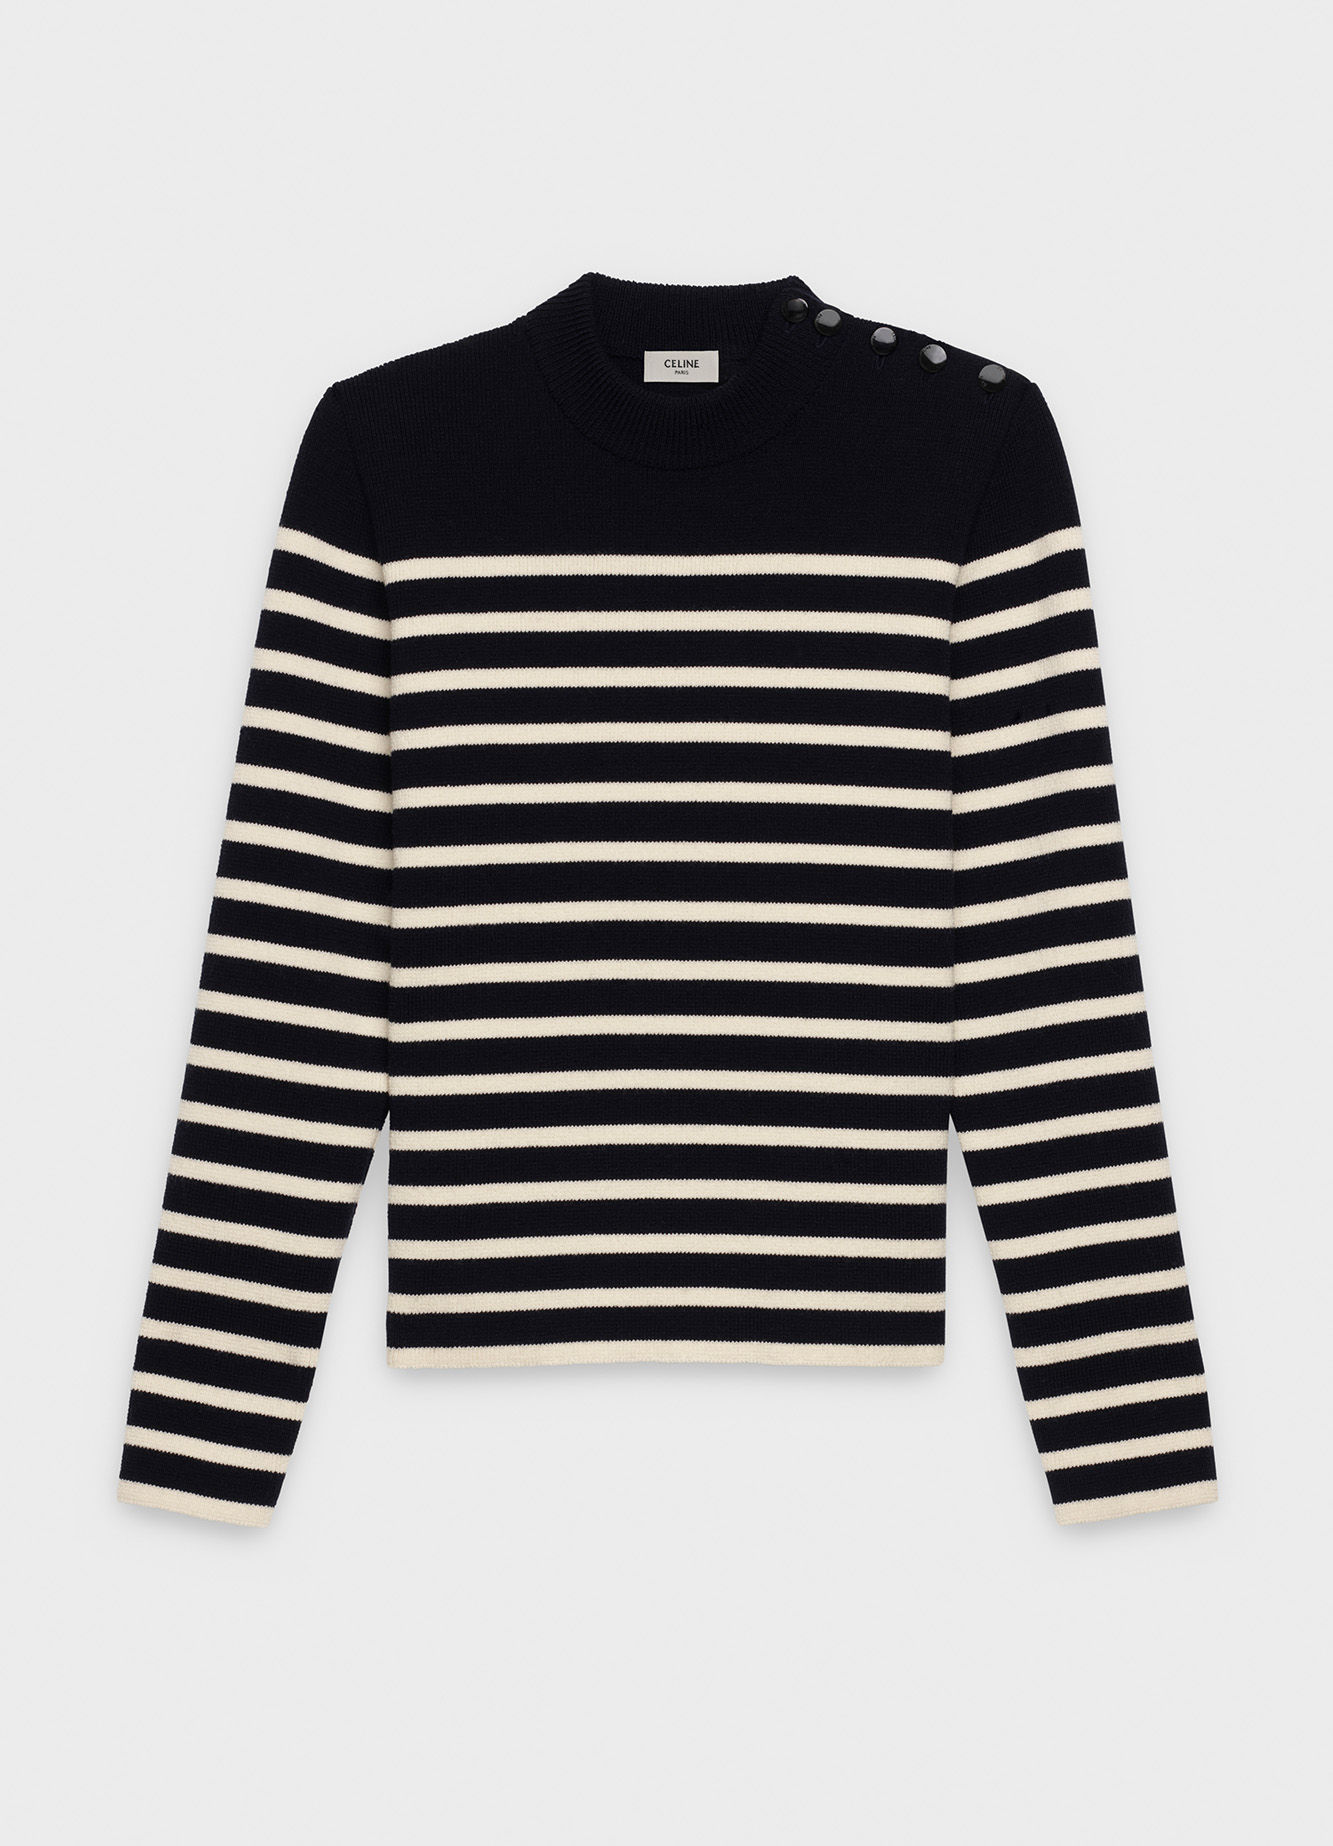 CELINE 'MARIN' SWEATER IN WOOL